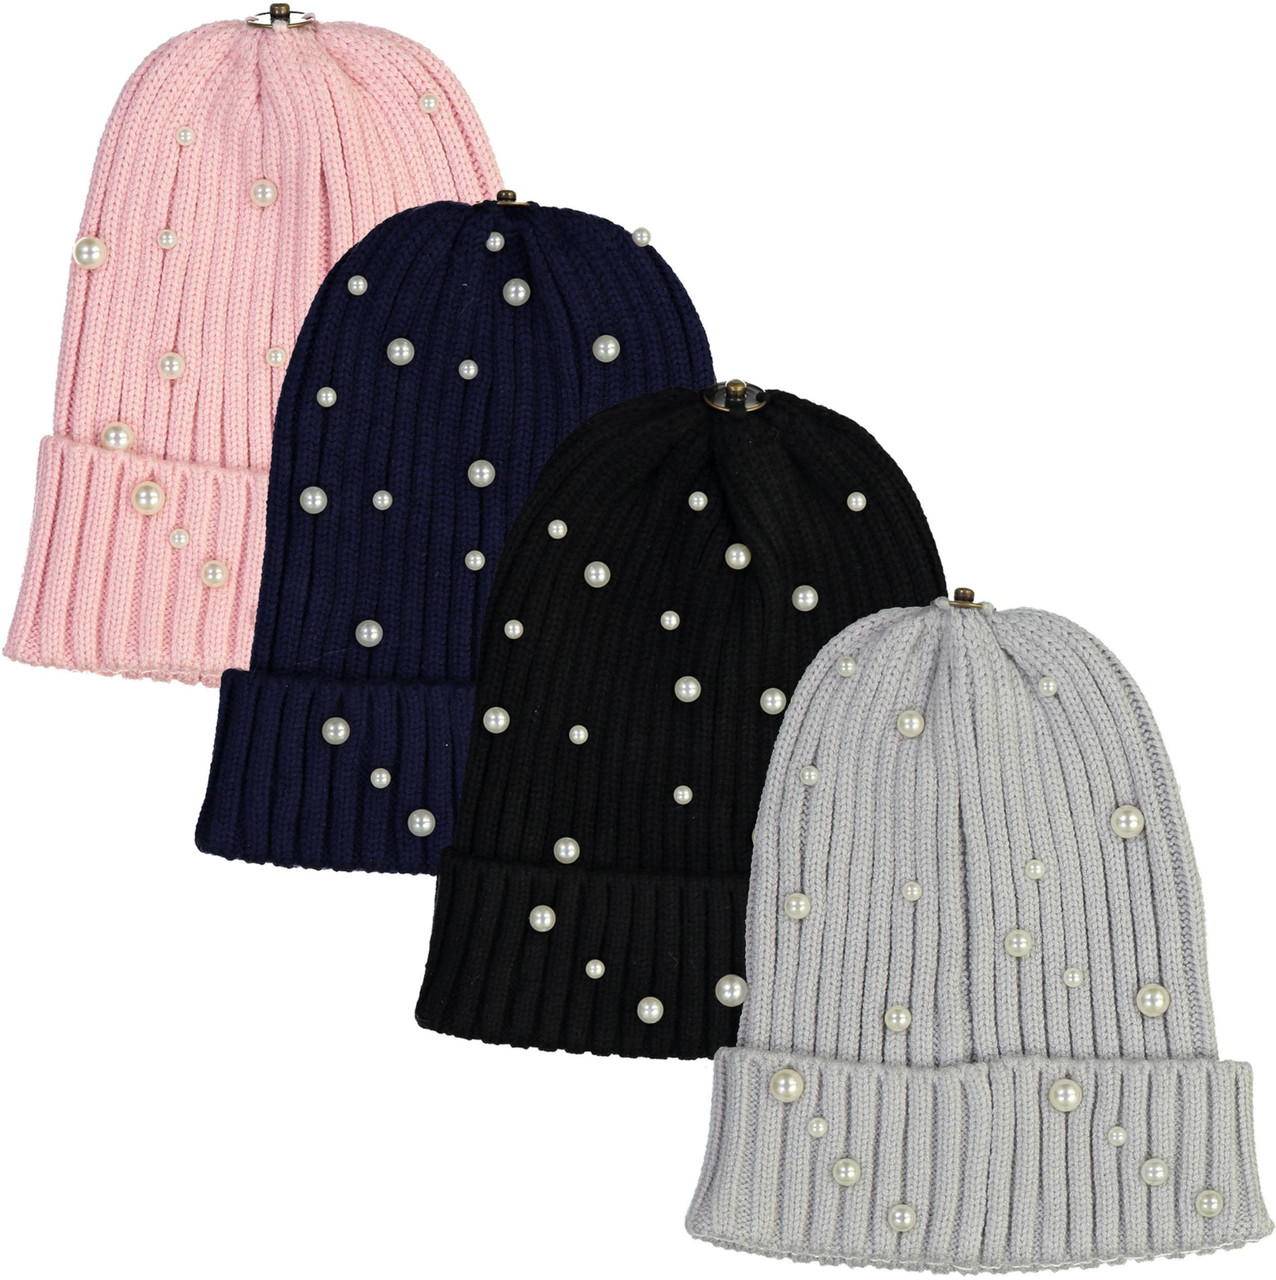 Delore Unisex Winter Hat with Pearls & Snap for Pompom - PM-19Z208